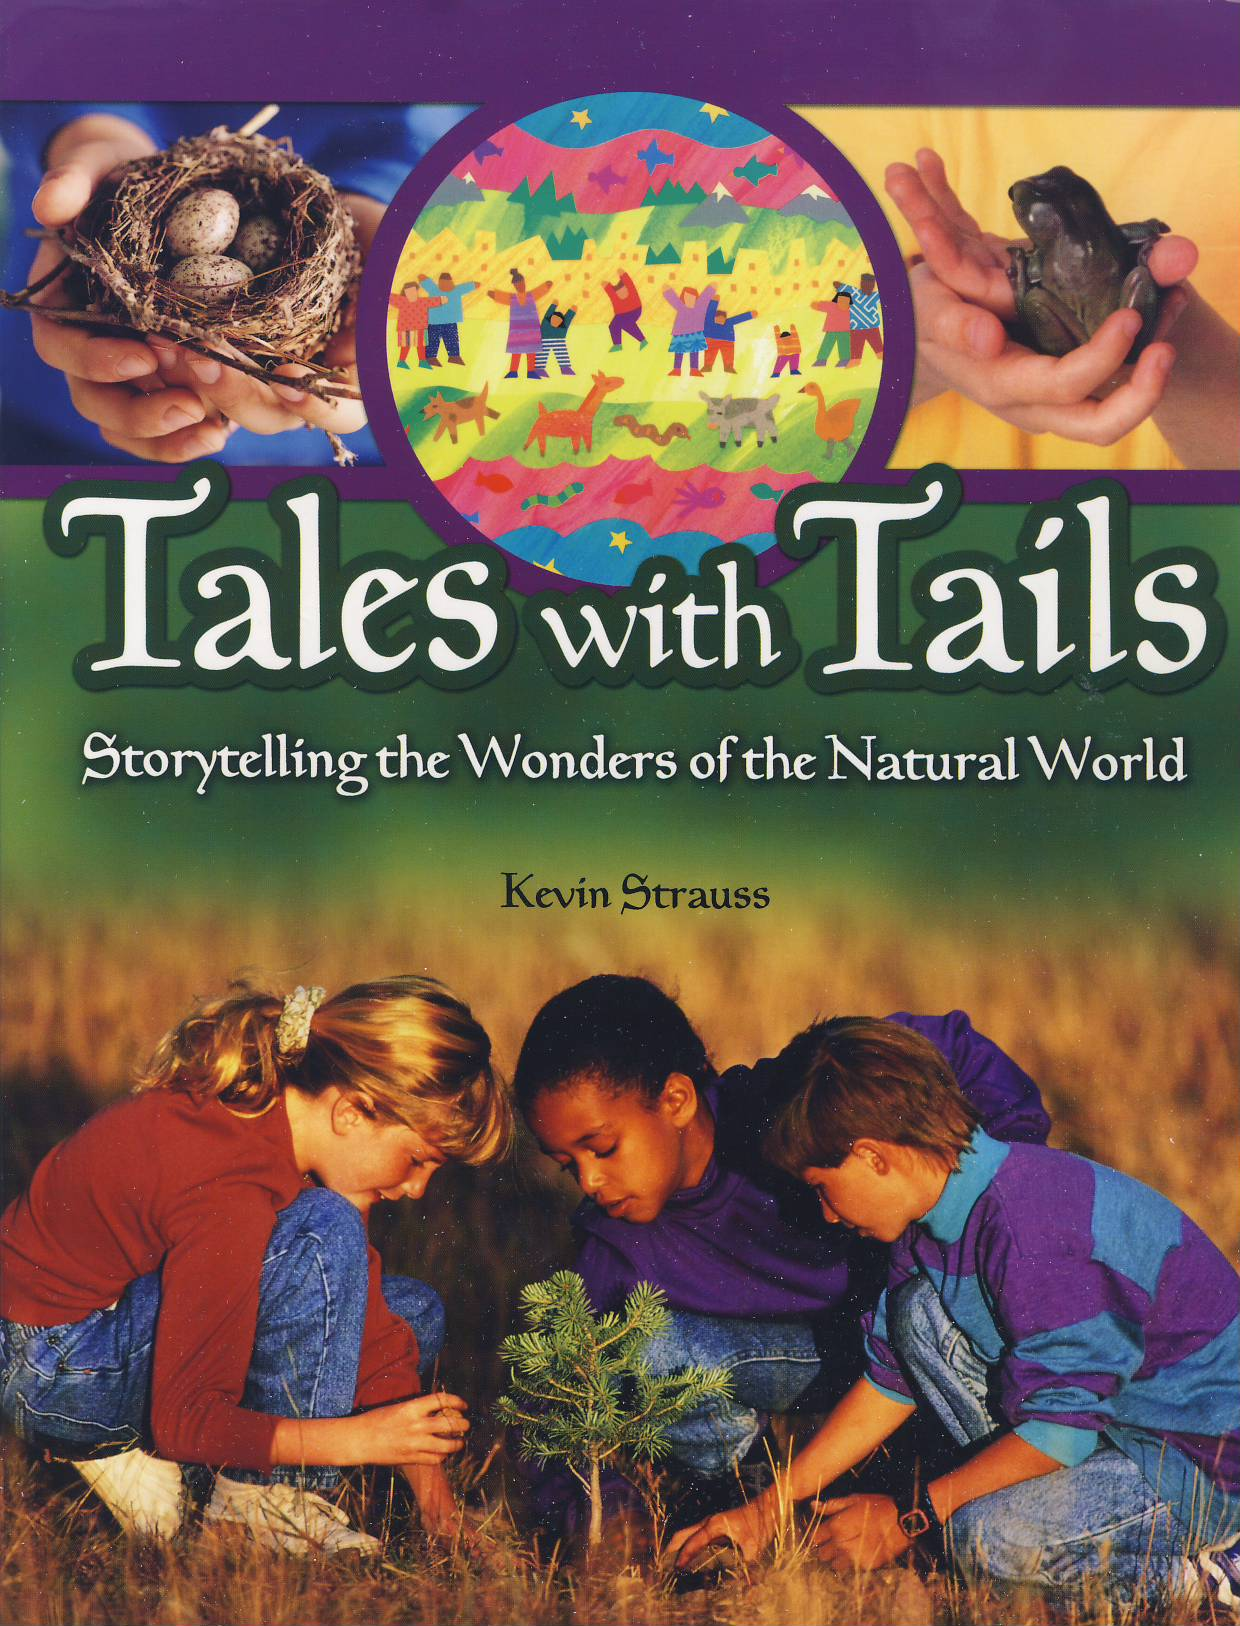 Cover of Tales with Tails - Storytelling the Wonders of the Natural World